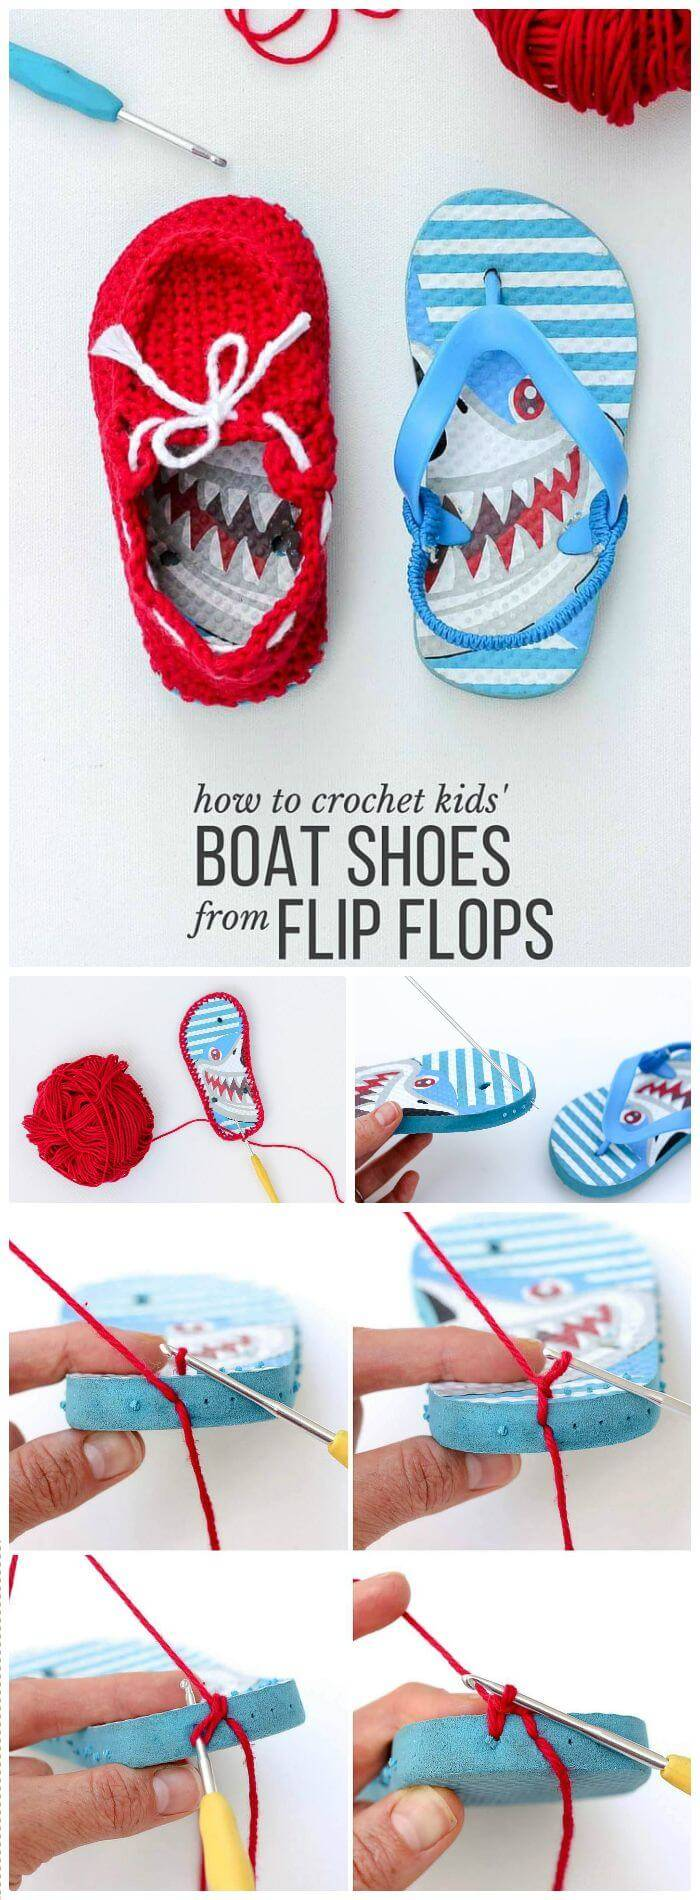 "DIY Crochet Toddler ""Boat Shoe"" Slippers With Flip Flop Soles Free Pattern, flip flop slippers crochet instructions"